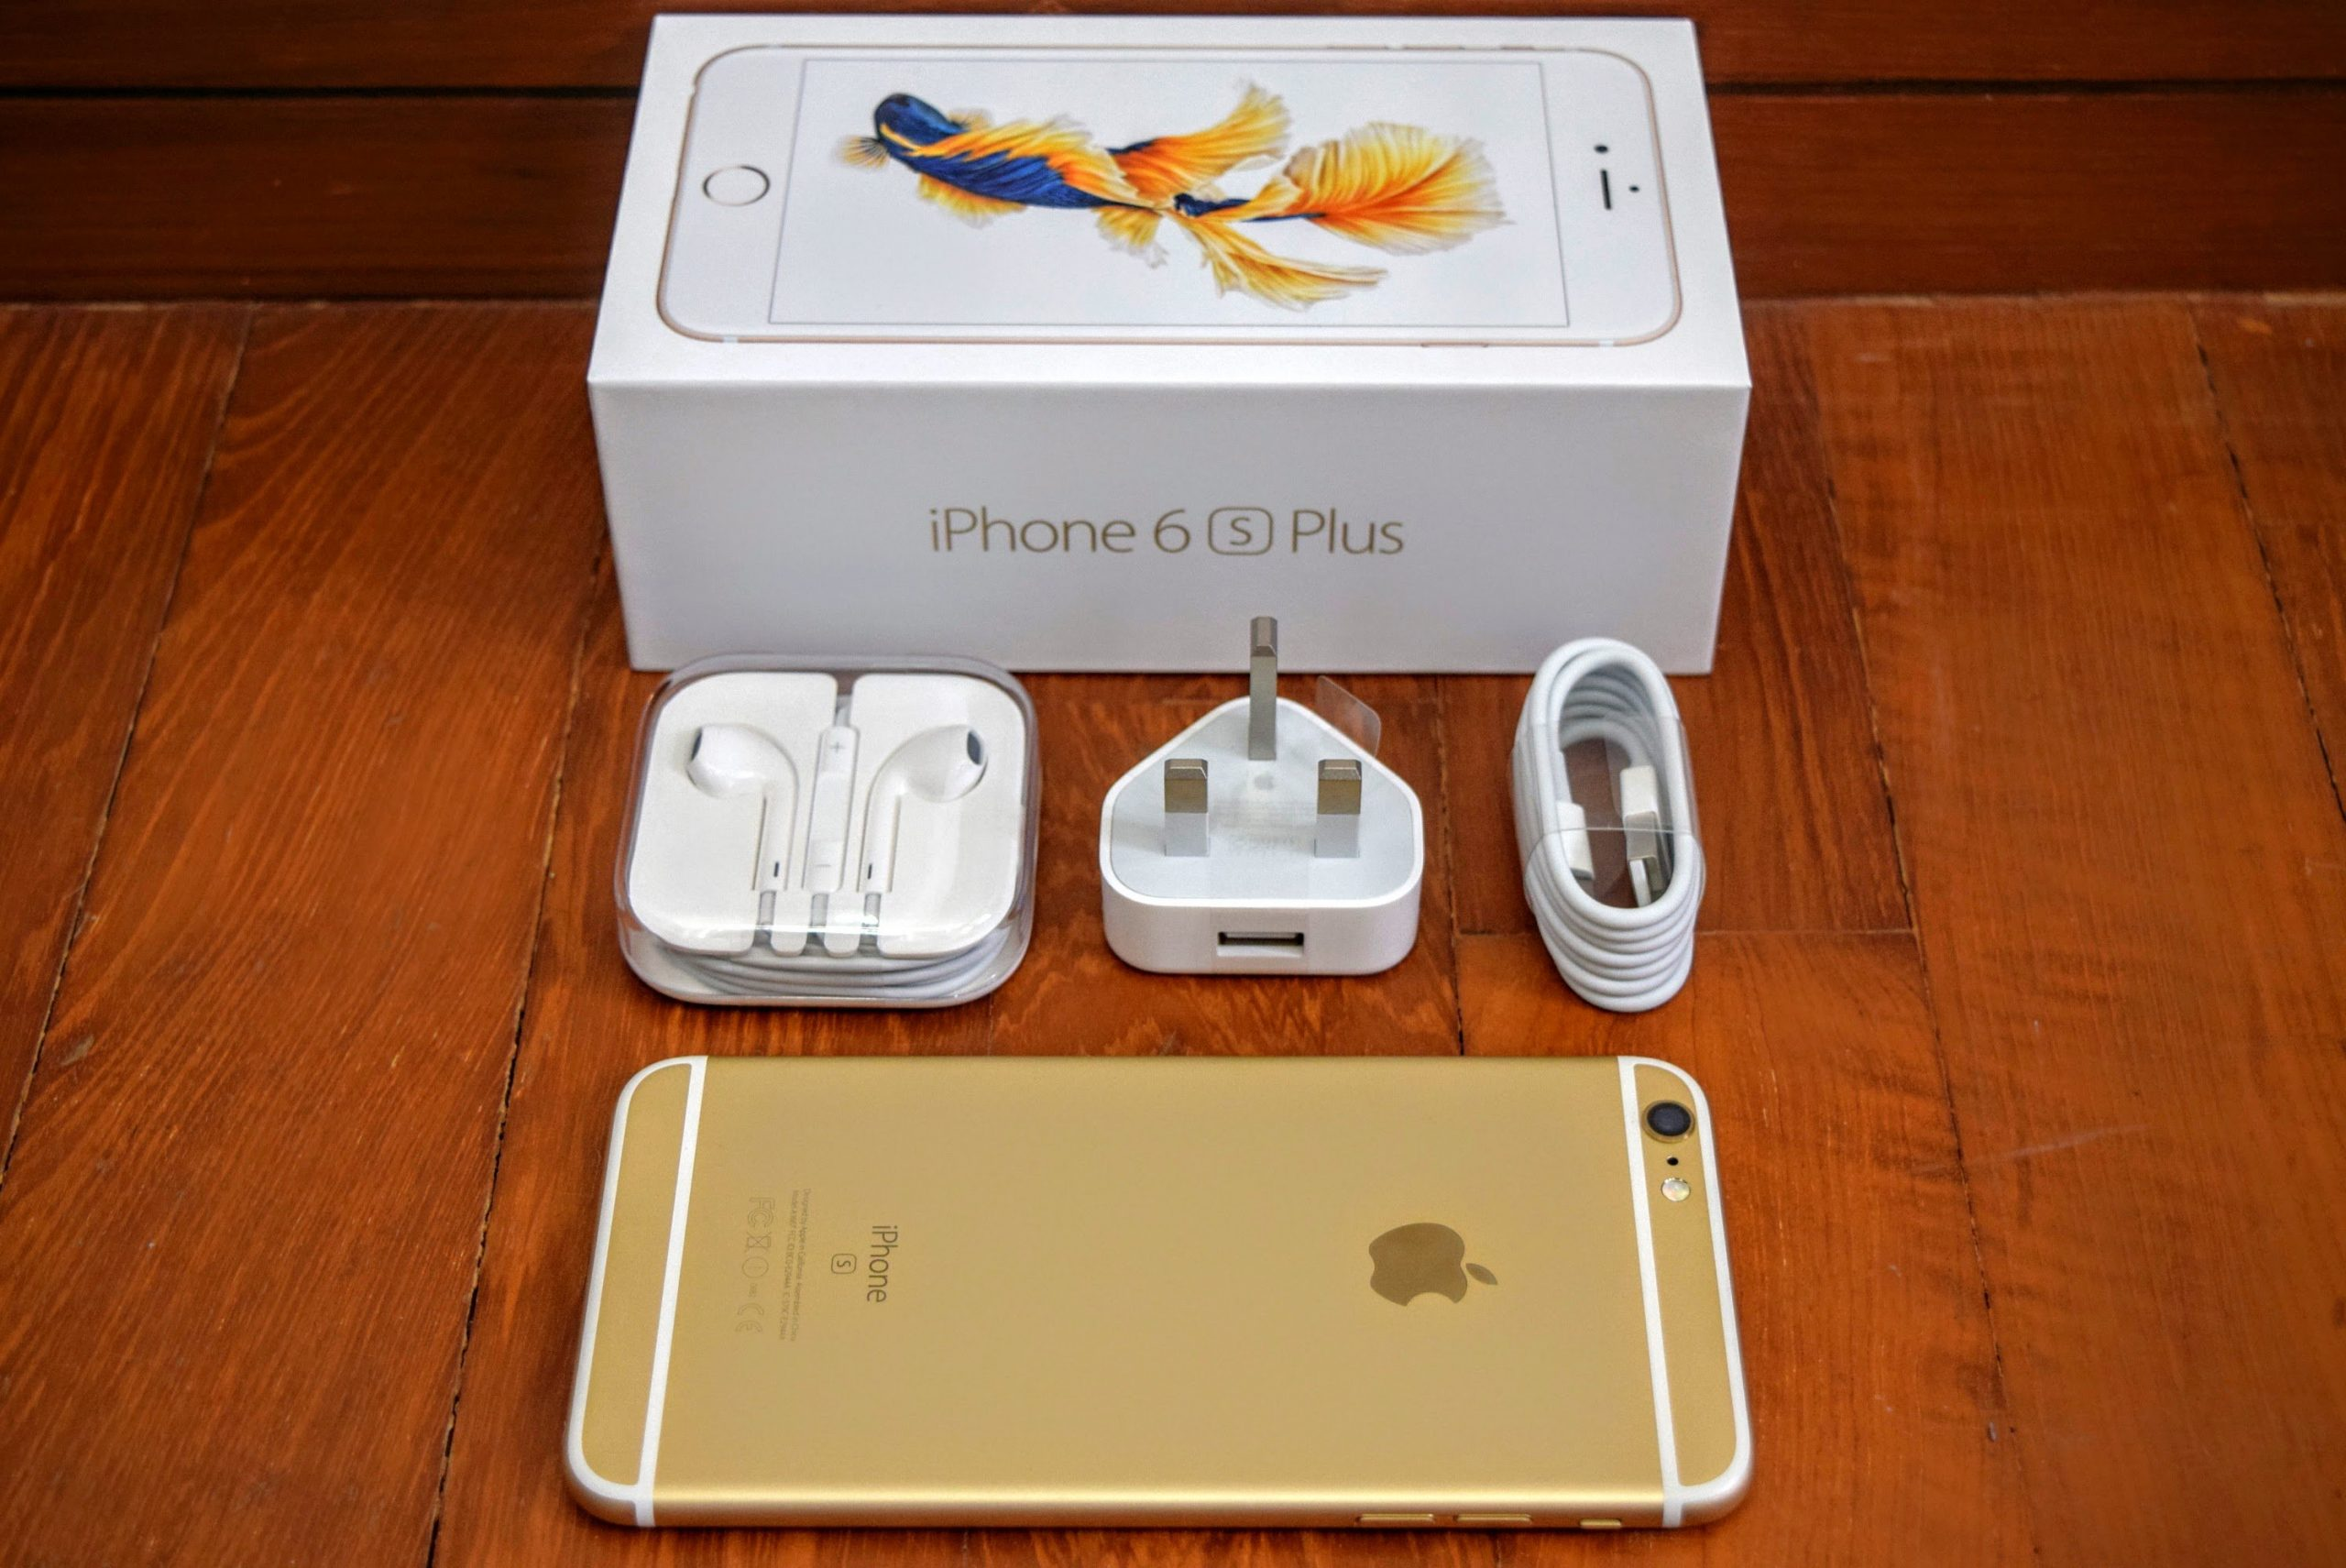 iphone 6s plus unboxing 0090 scaled